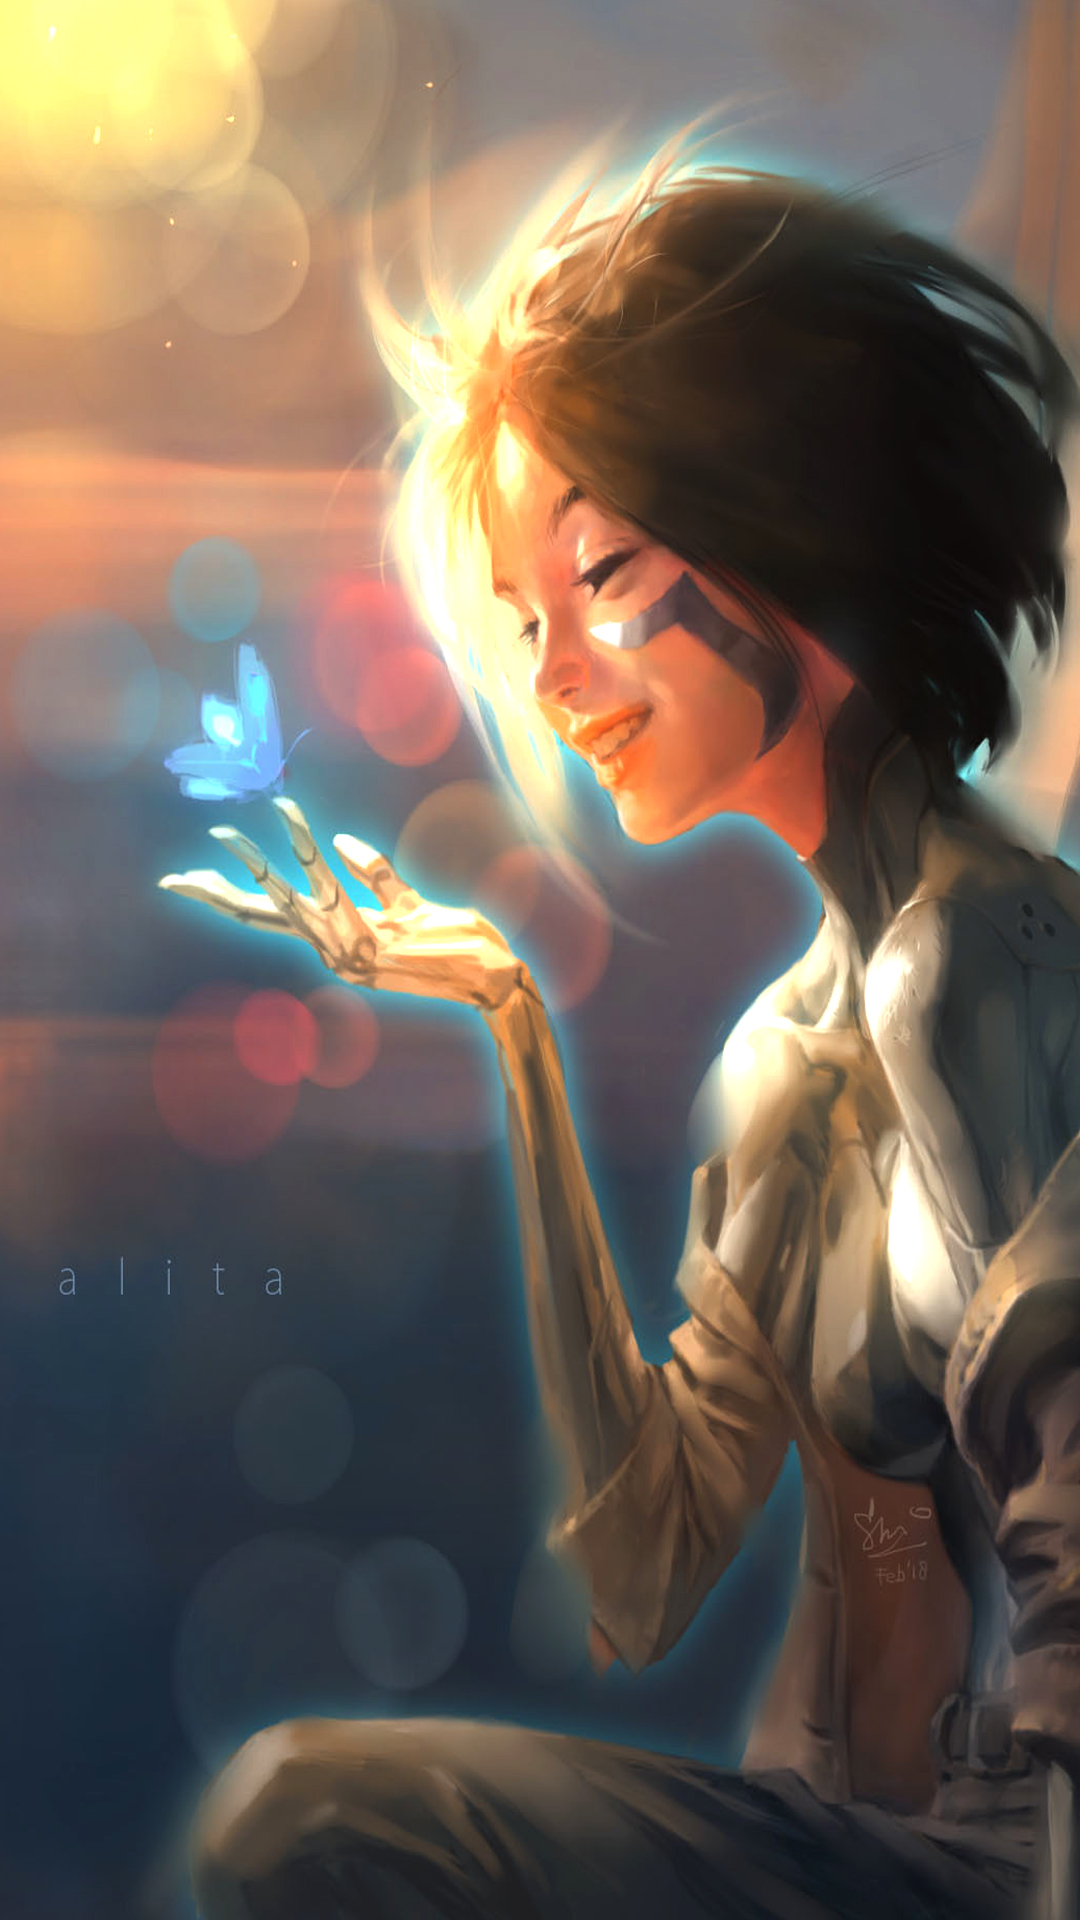 Alita Angel Fan Art Wallpaper